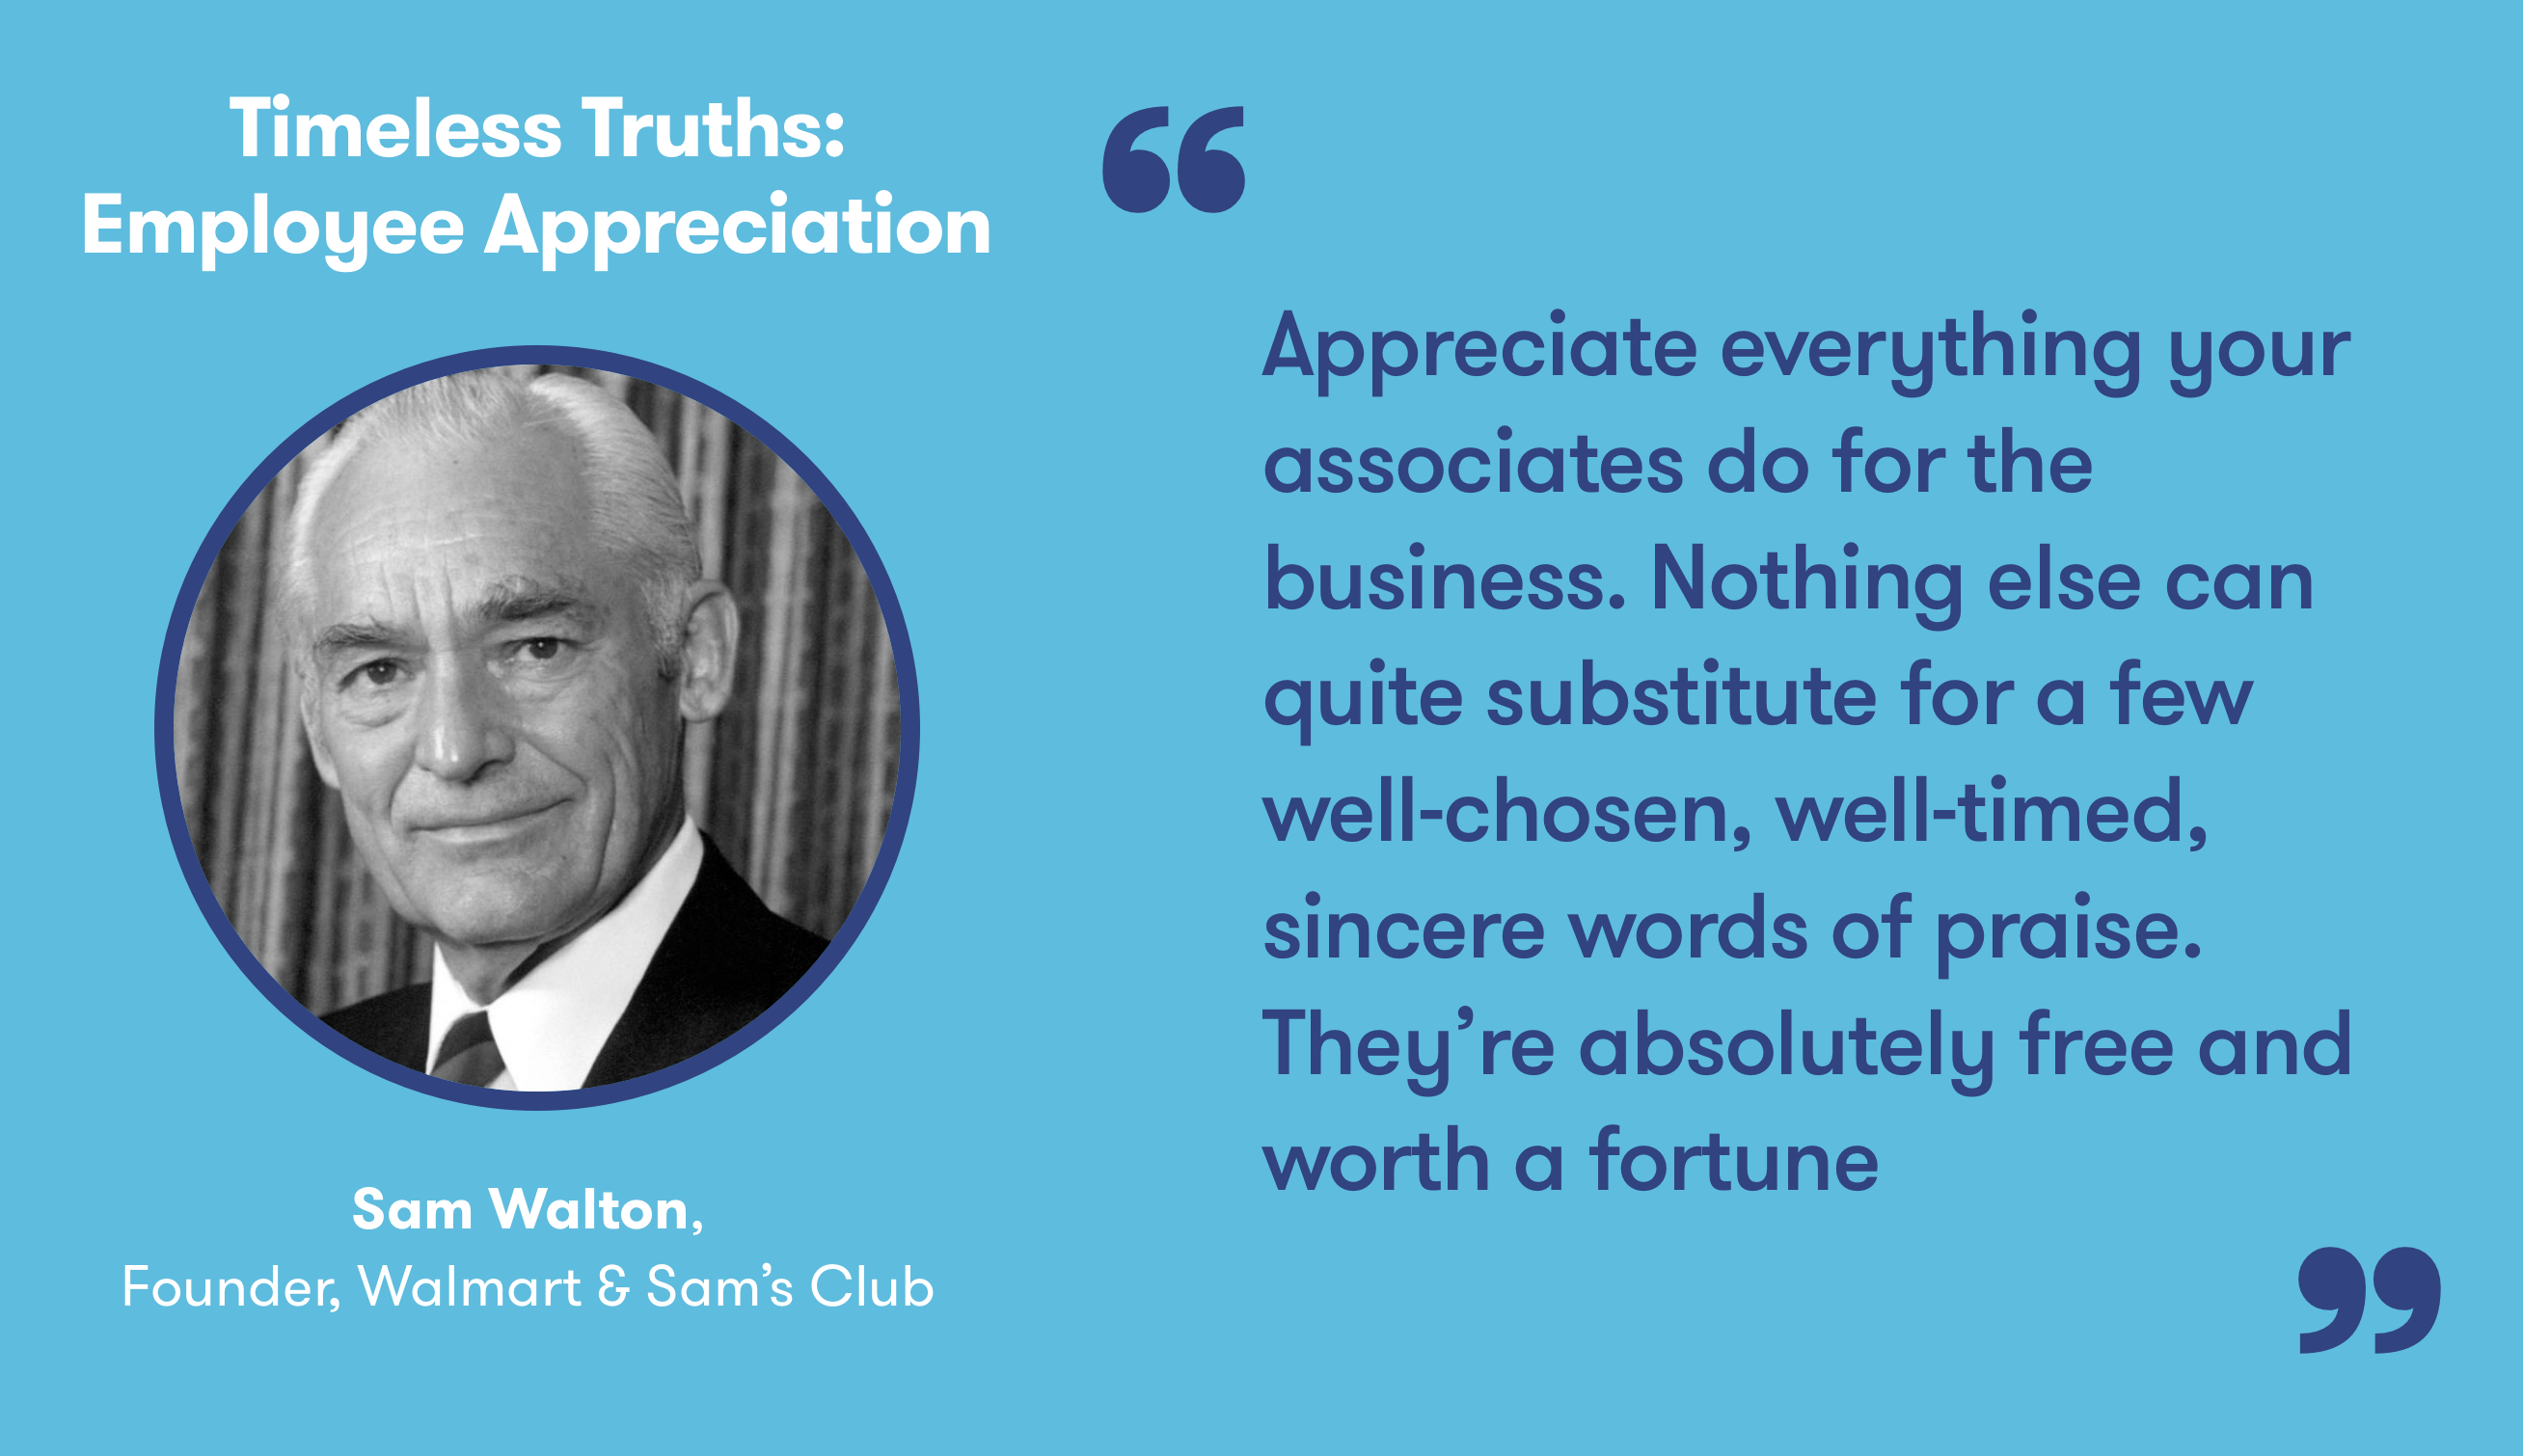 Inspirational quote on why showing your employees you appreciate